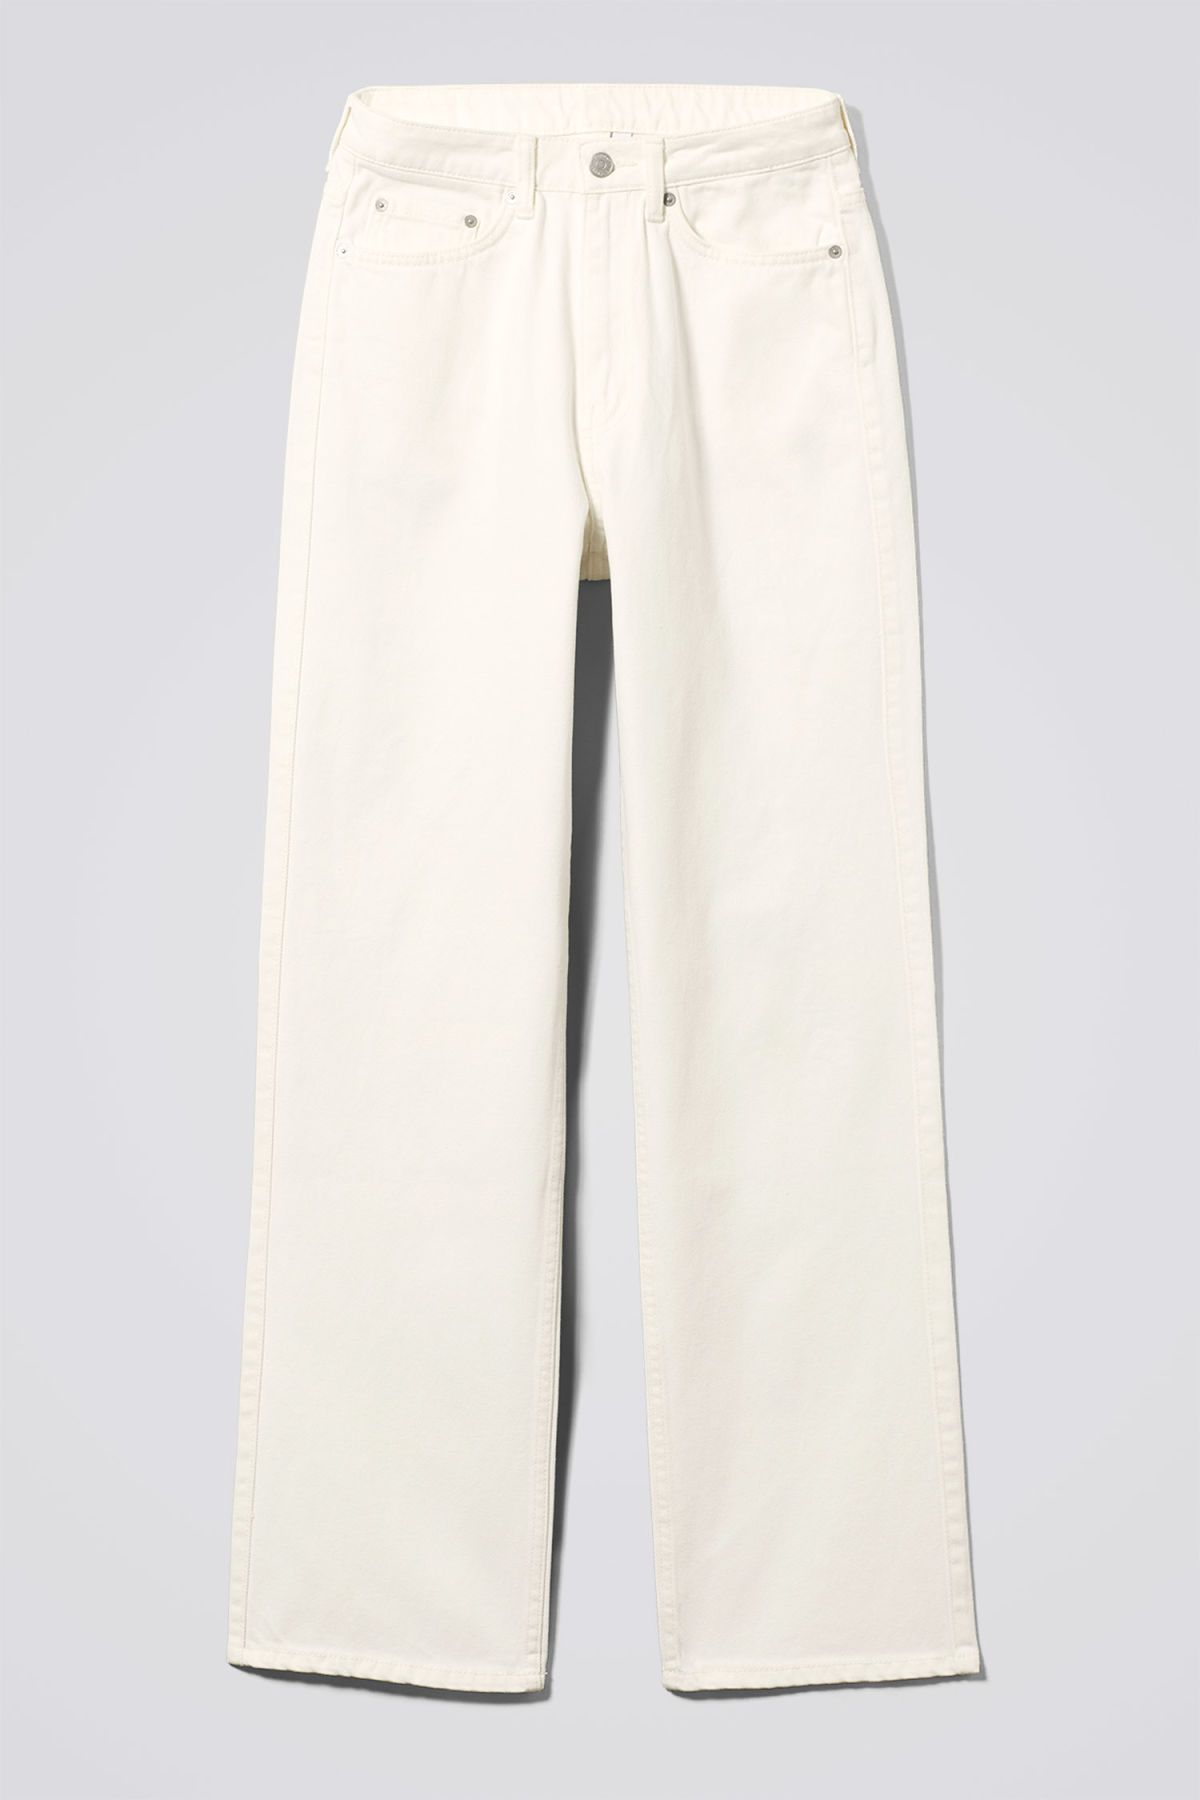 b3681636 Pin by Caroline Maria on WISHLIST | Pinterest | White jeans and Models